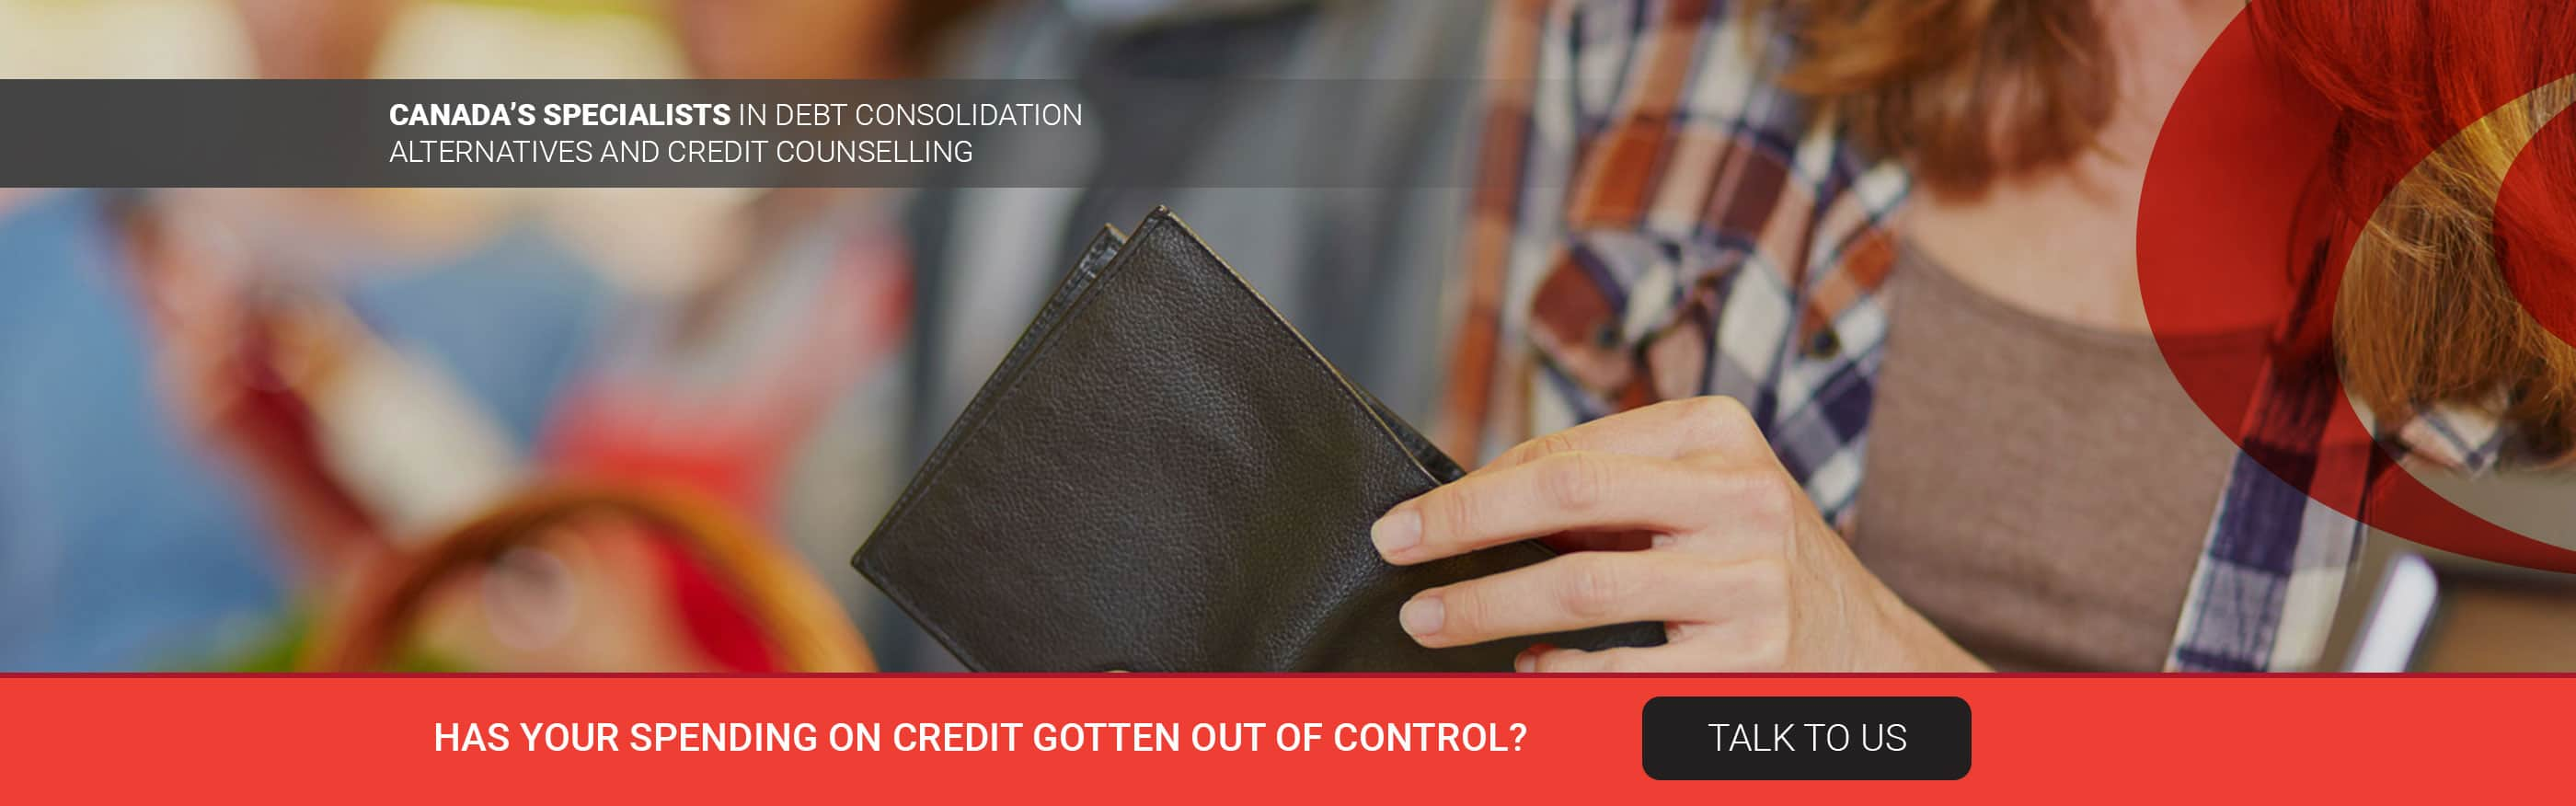 Has Your Spending On Credit Gotten Out of Control?